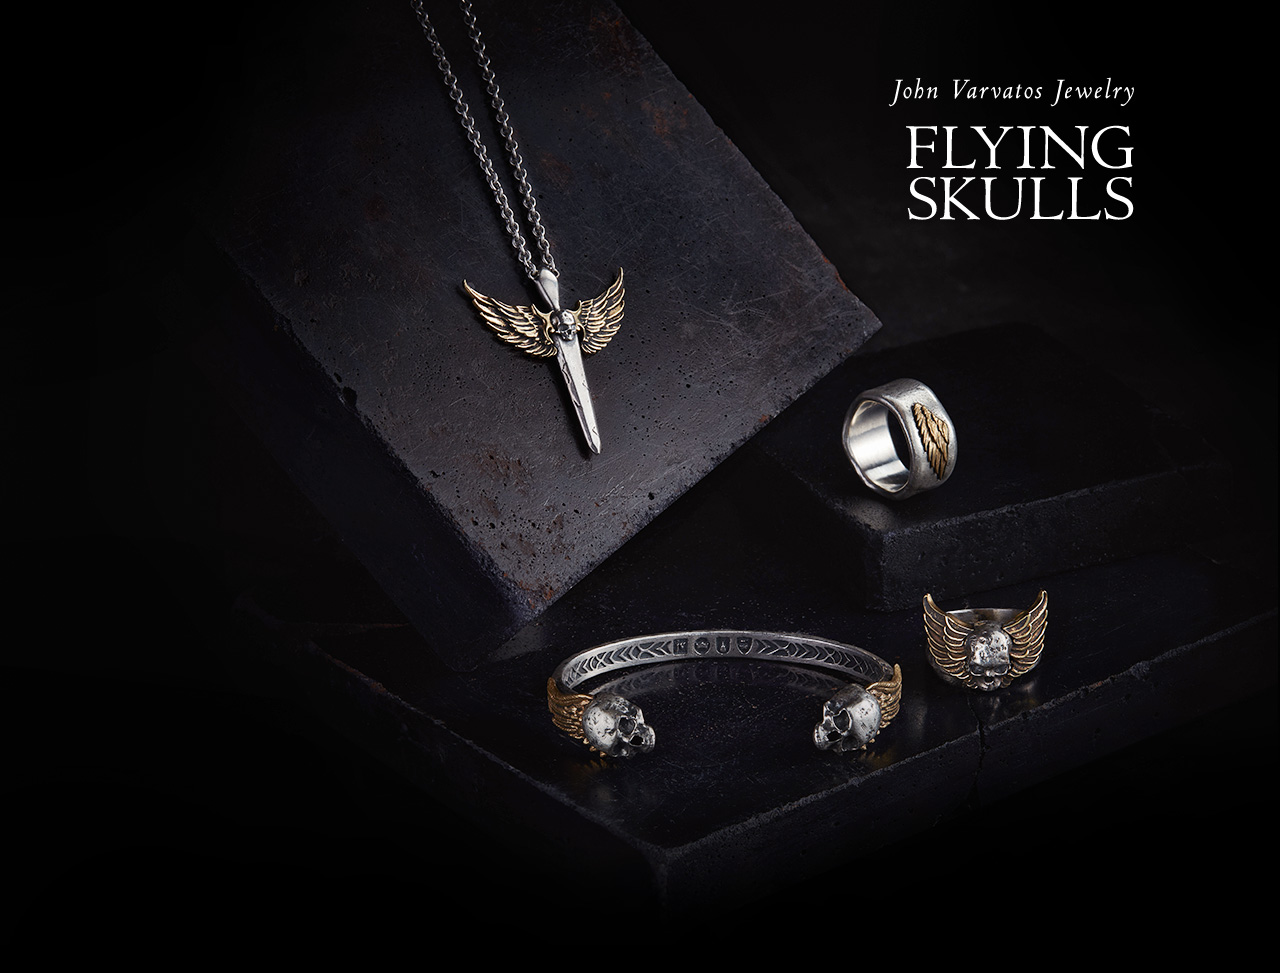 John Varvatos Jewelry - Flying Skulls